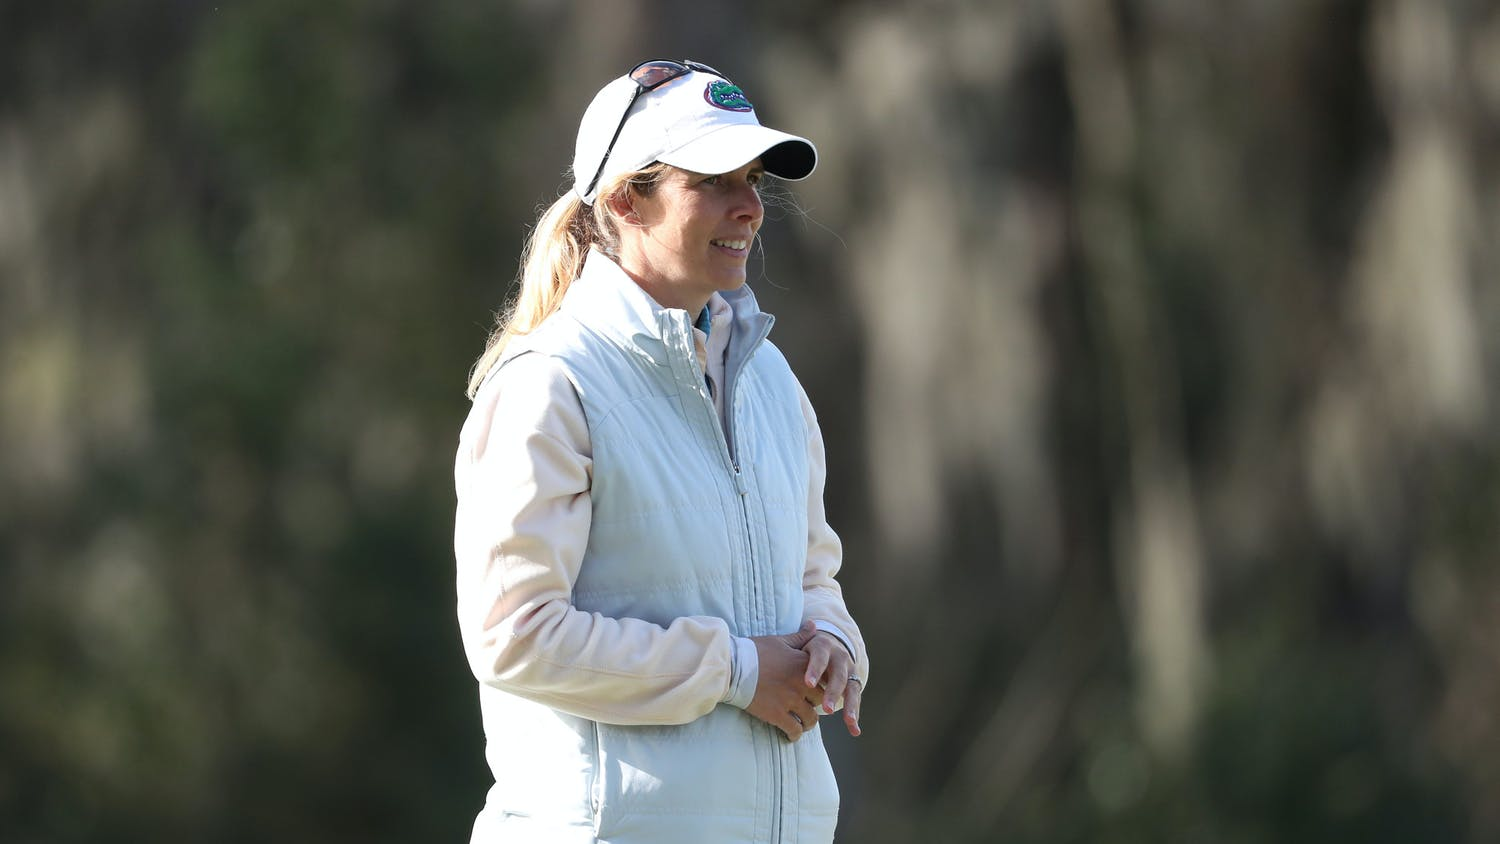 The Gators shot a collective 43-over-par and finished in ninth place, 26 strokes behind the champion South Carolina Gamecocks. Courtesy of the UAA. Photo from Feb. 22.